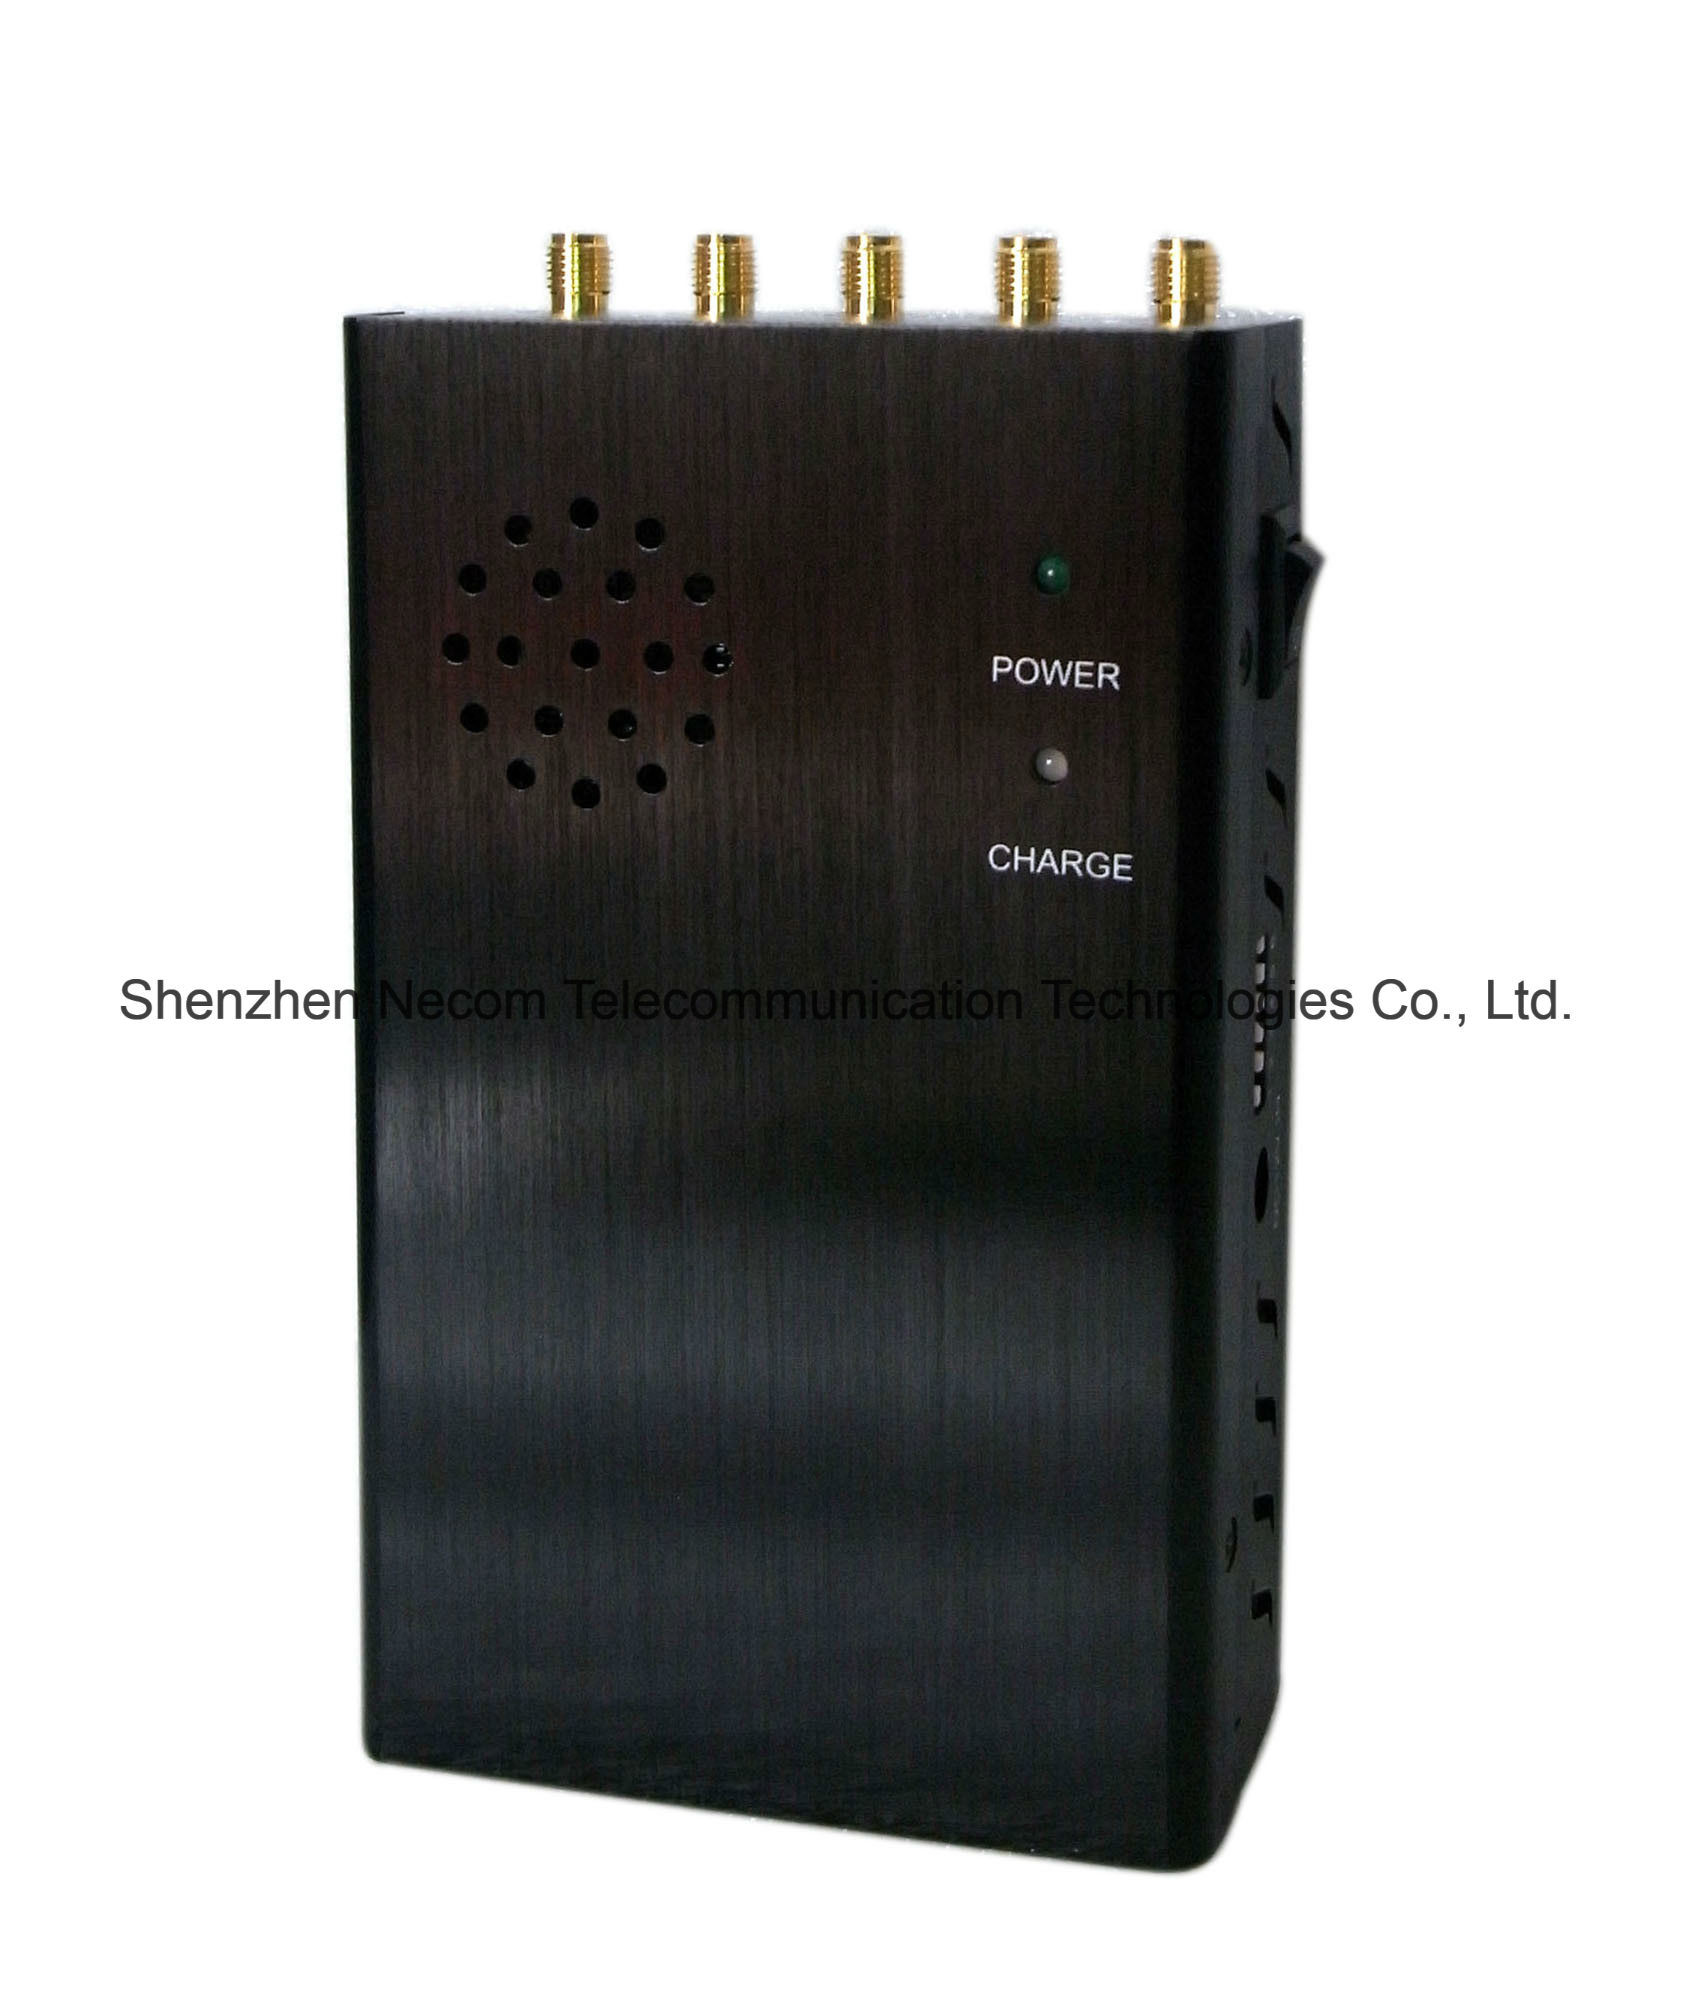 anti jammer mobile device - China Wireless Signal Jammer with Good Quality&Favourable Price Jamming for Wired Camera, GPS Tracker, Mobile Phones, GSM Jammer/GPS Jammer /Cell Phone Jammer - China 5 Band Signal Blockers, Five Antennas Jammers